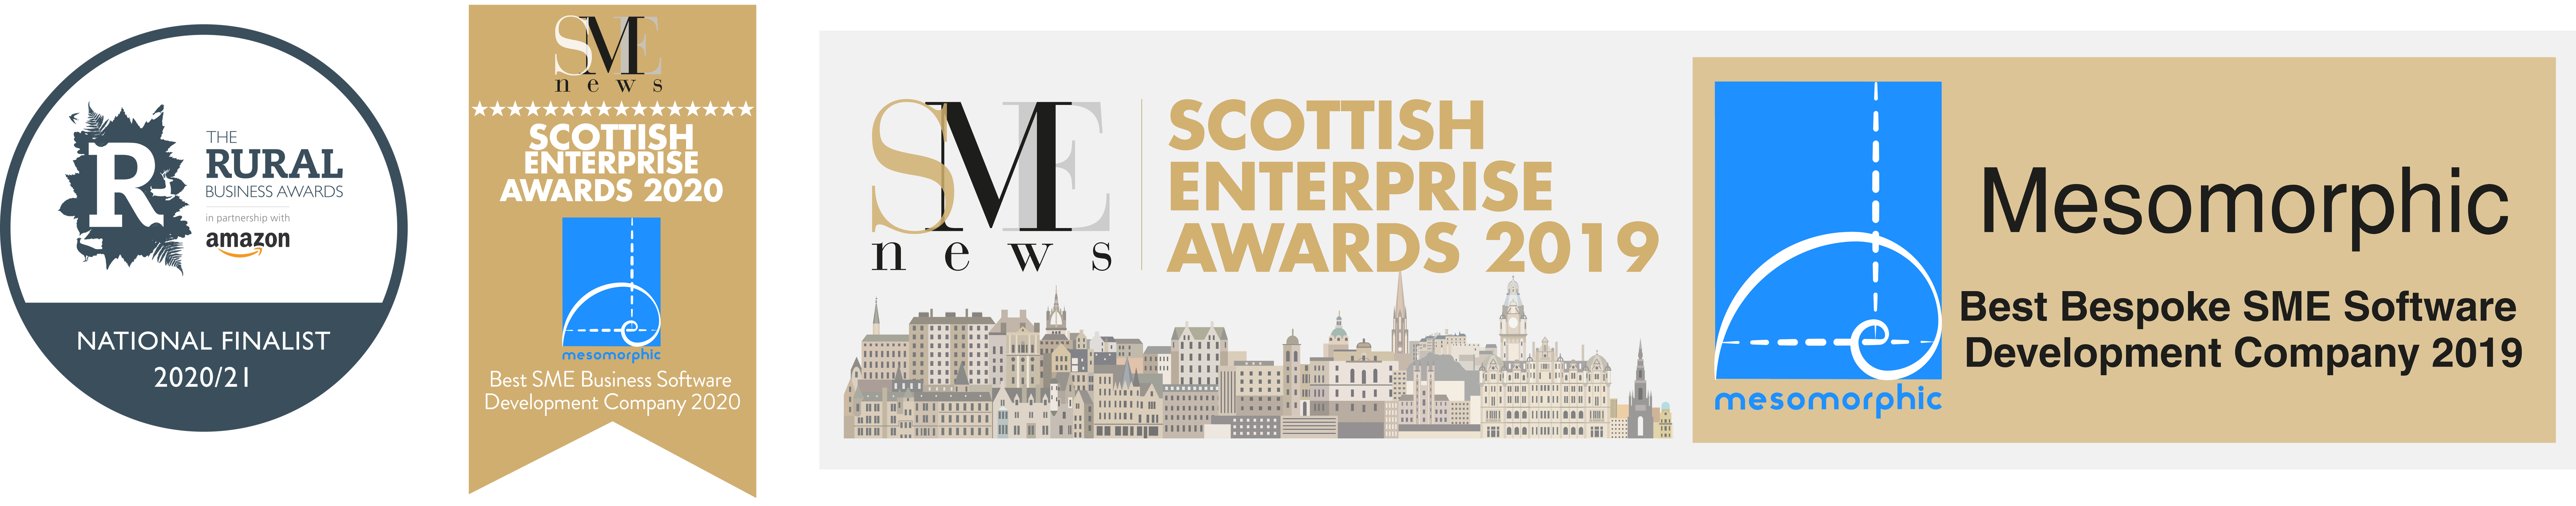 Combined awards logos for Amazon Rural Business Award finalists, SME Business Awards 2019 and 2020